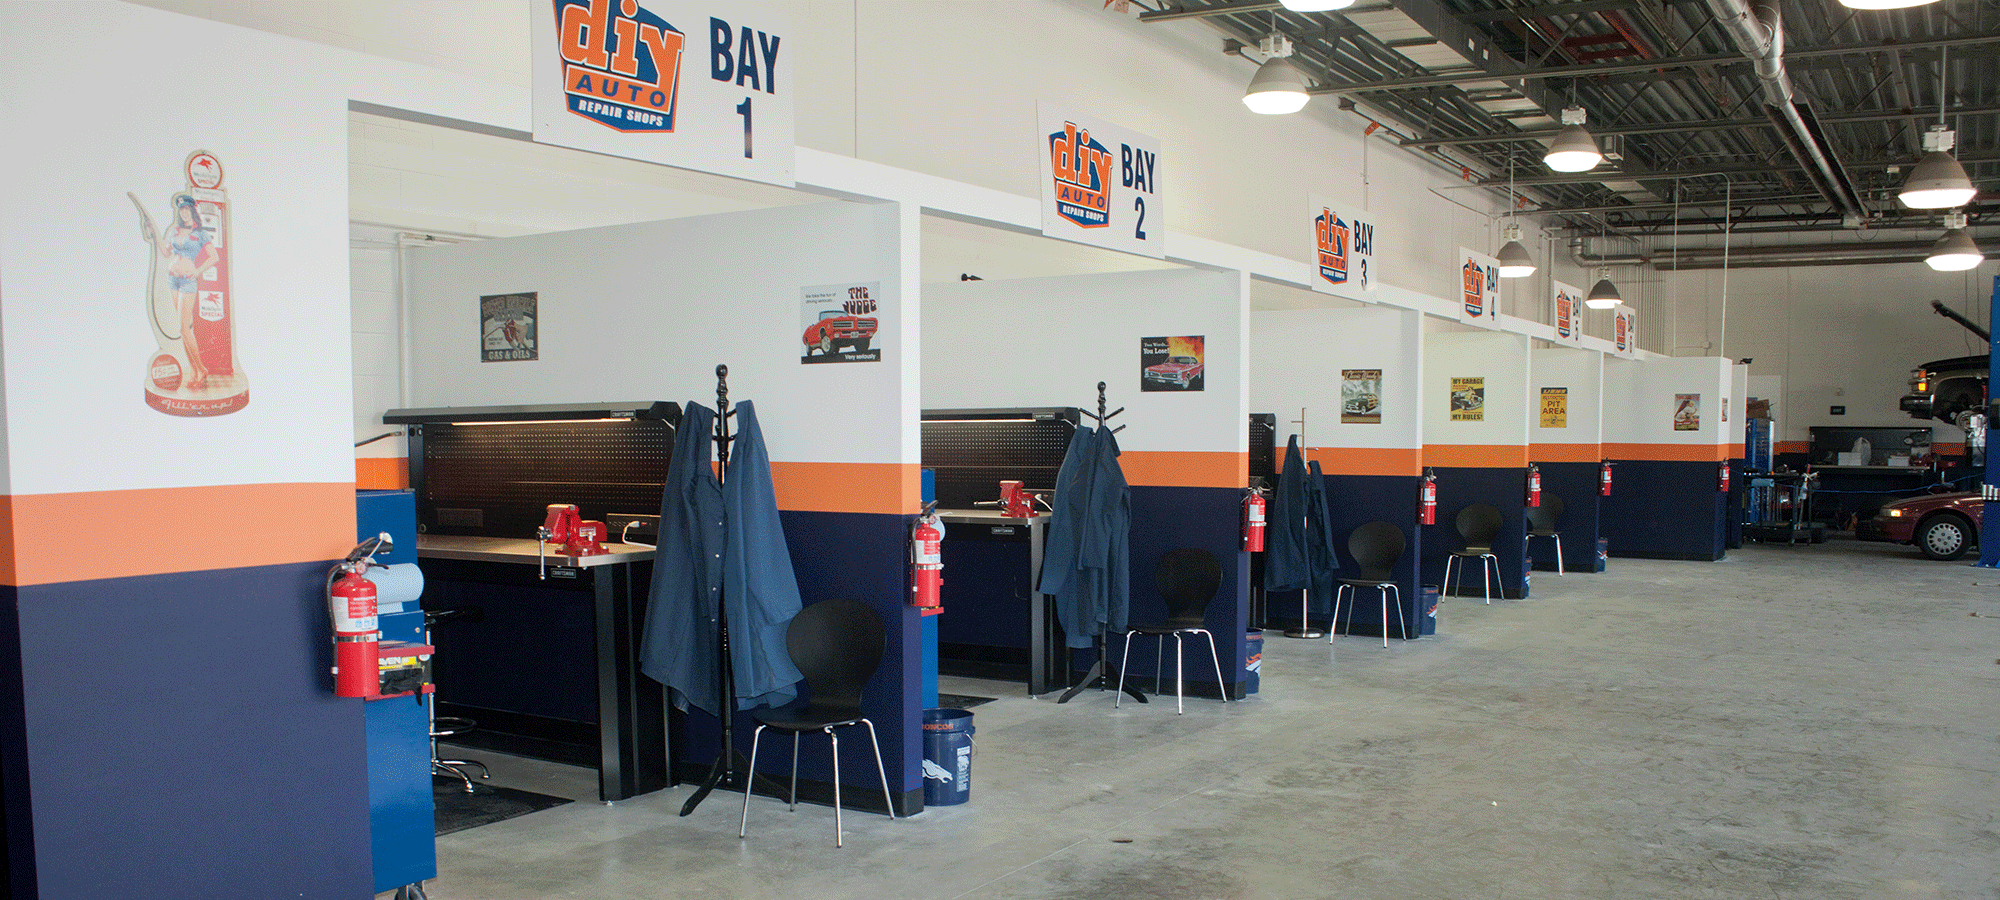 diy auto repair shops equipped self service garage bays